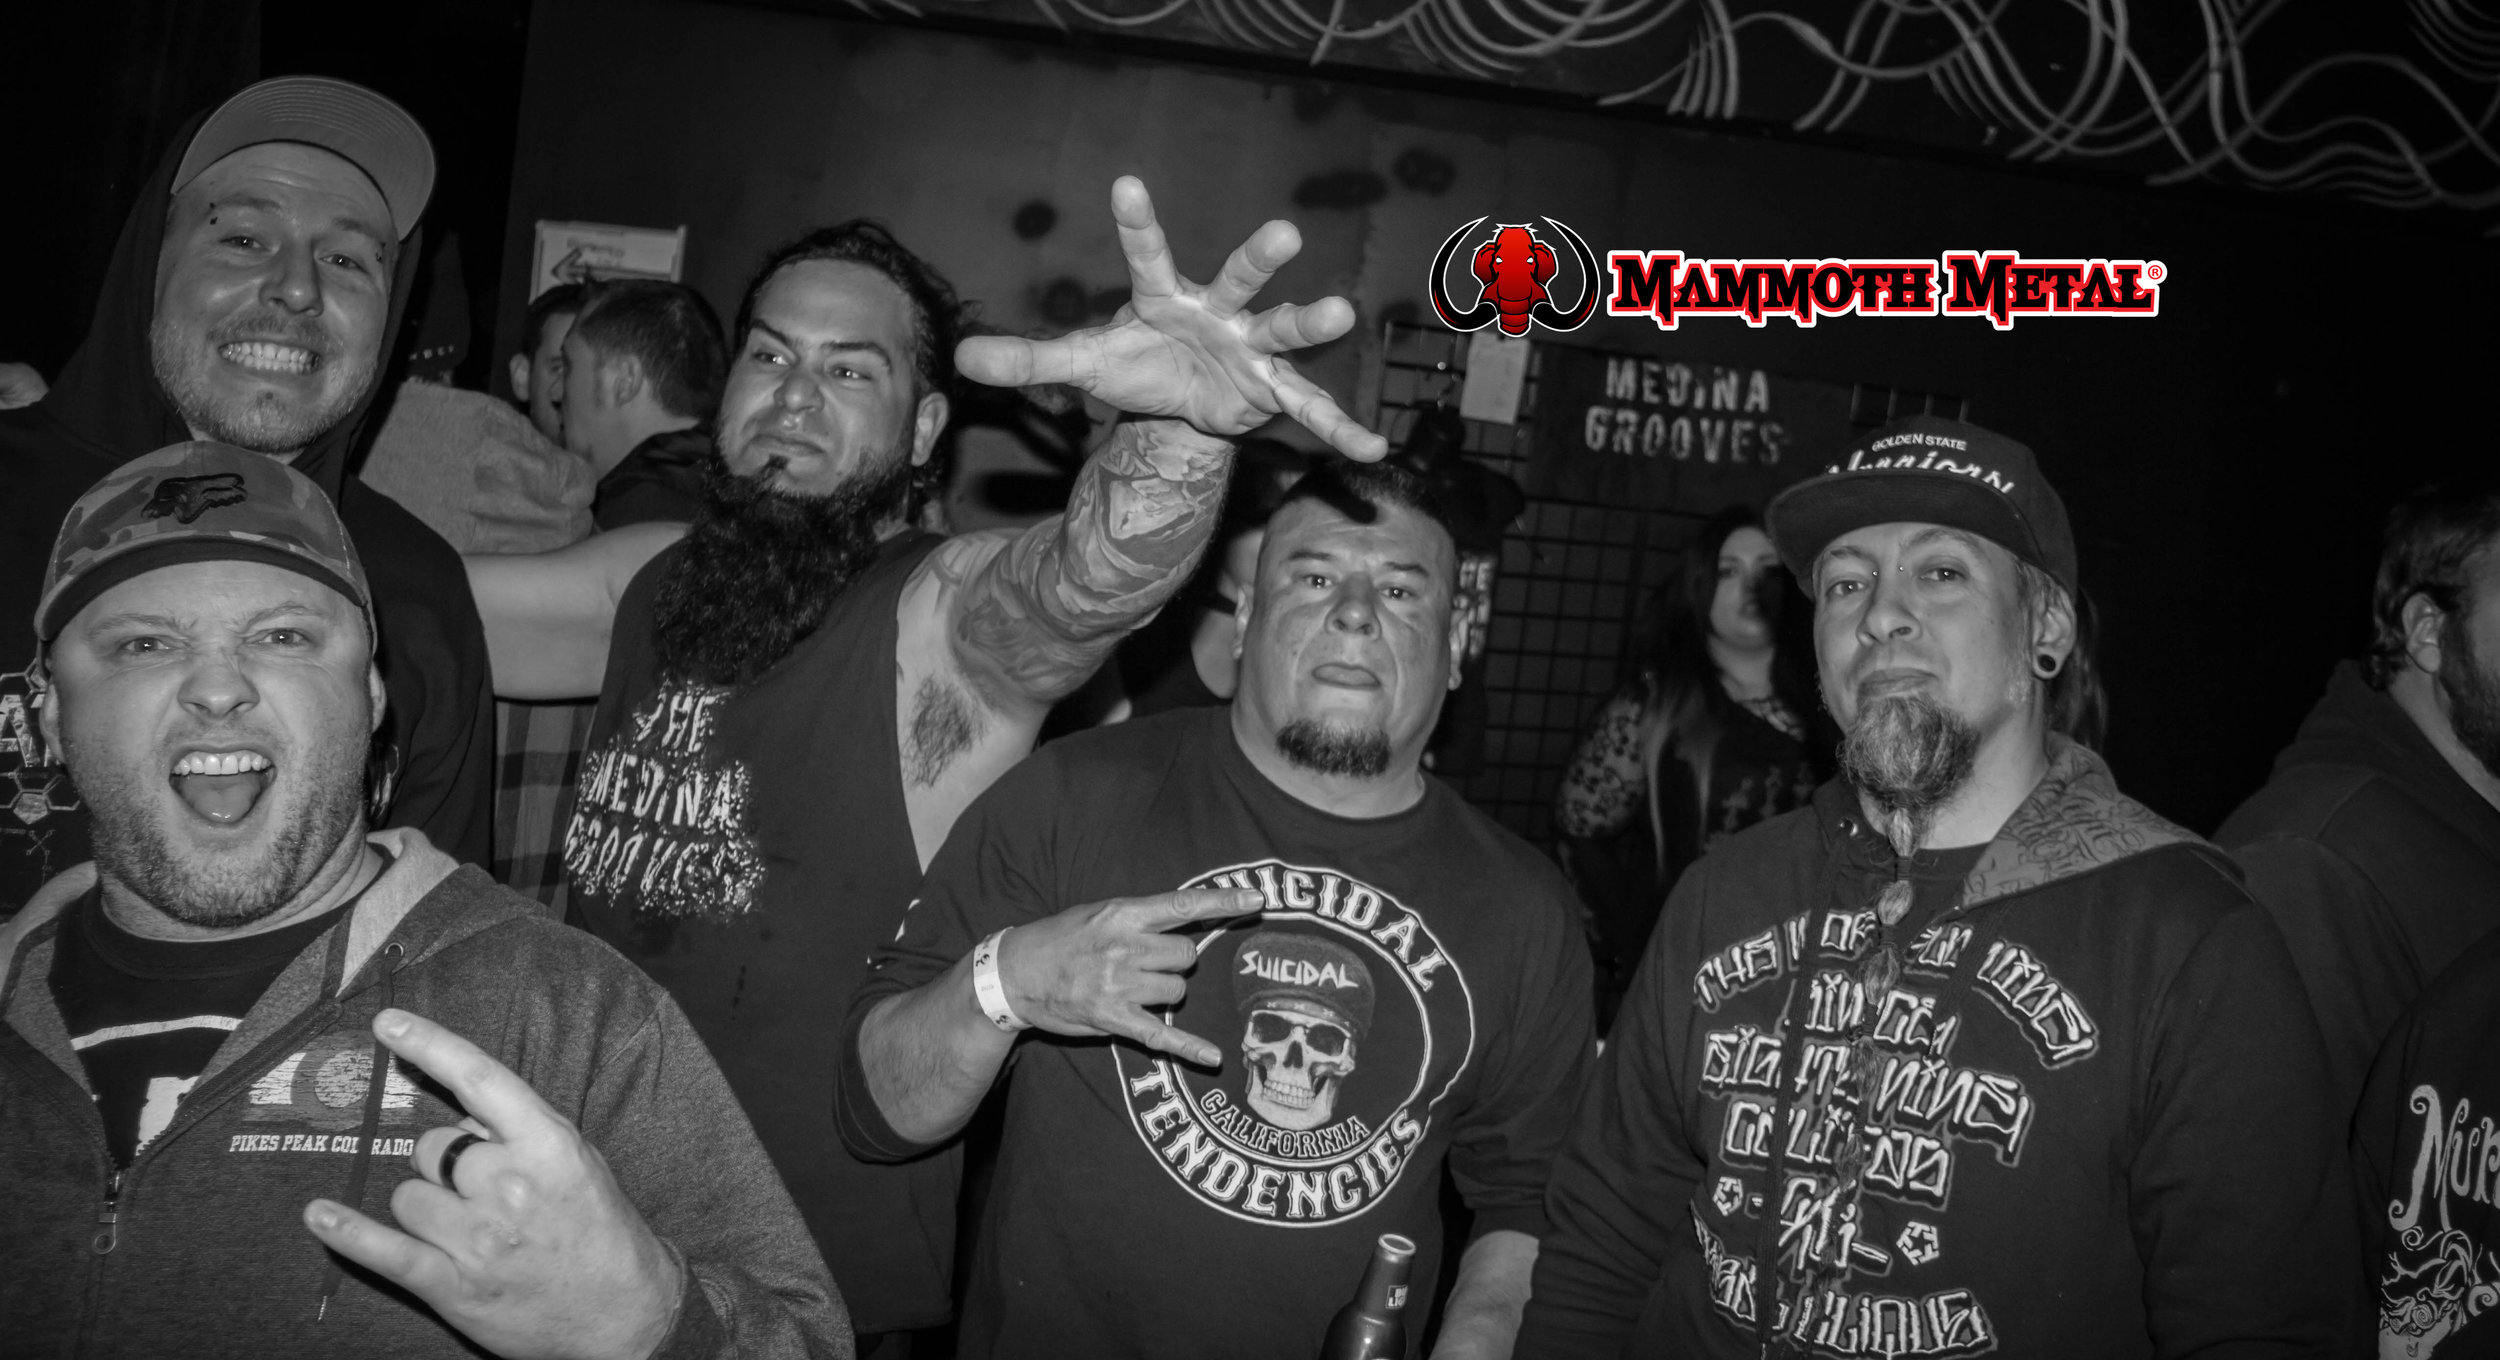 Members of Fist Fight, Smack Factor, The Medina Grooves and Ill Niño all came together for this awesome night.  photo: David BUrke